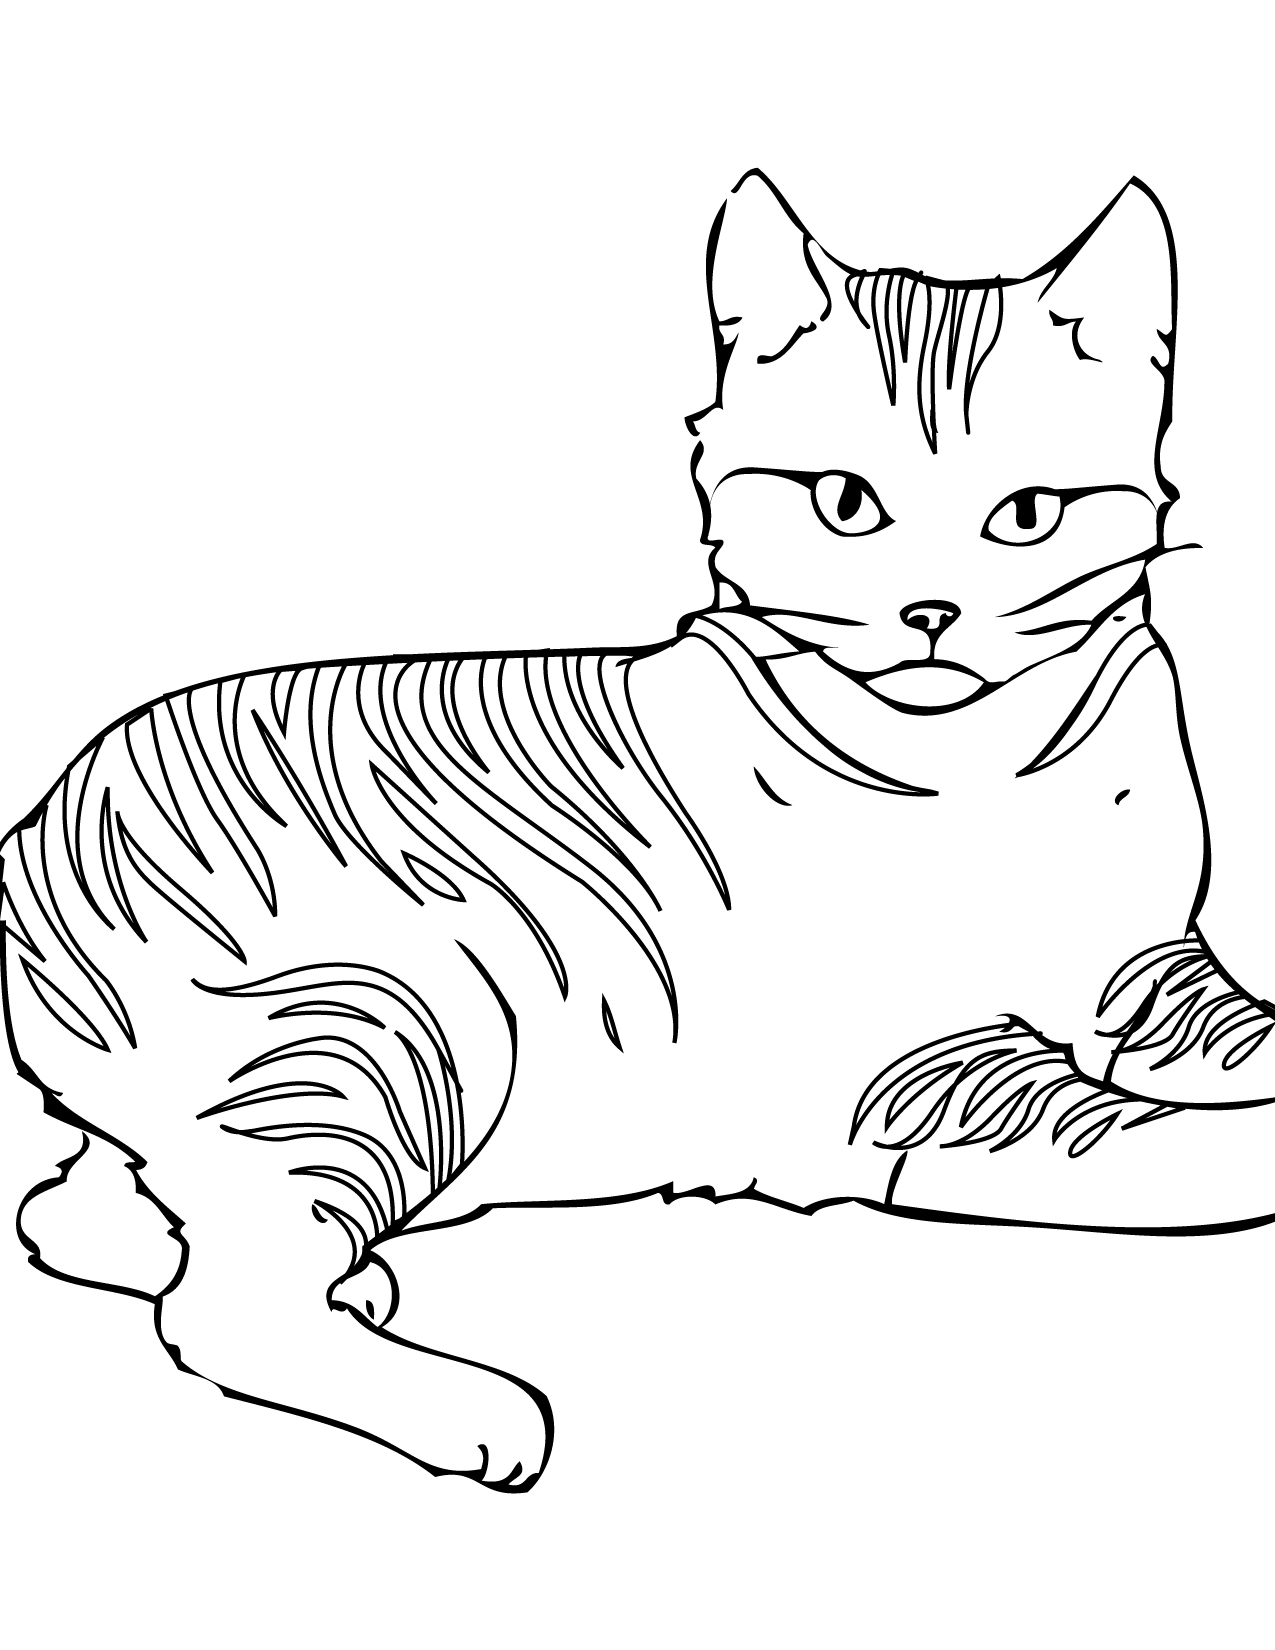 warrior cat coloring pages - Cat Coloring Pages Printable